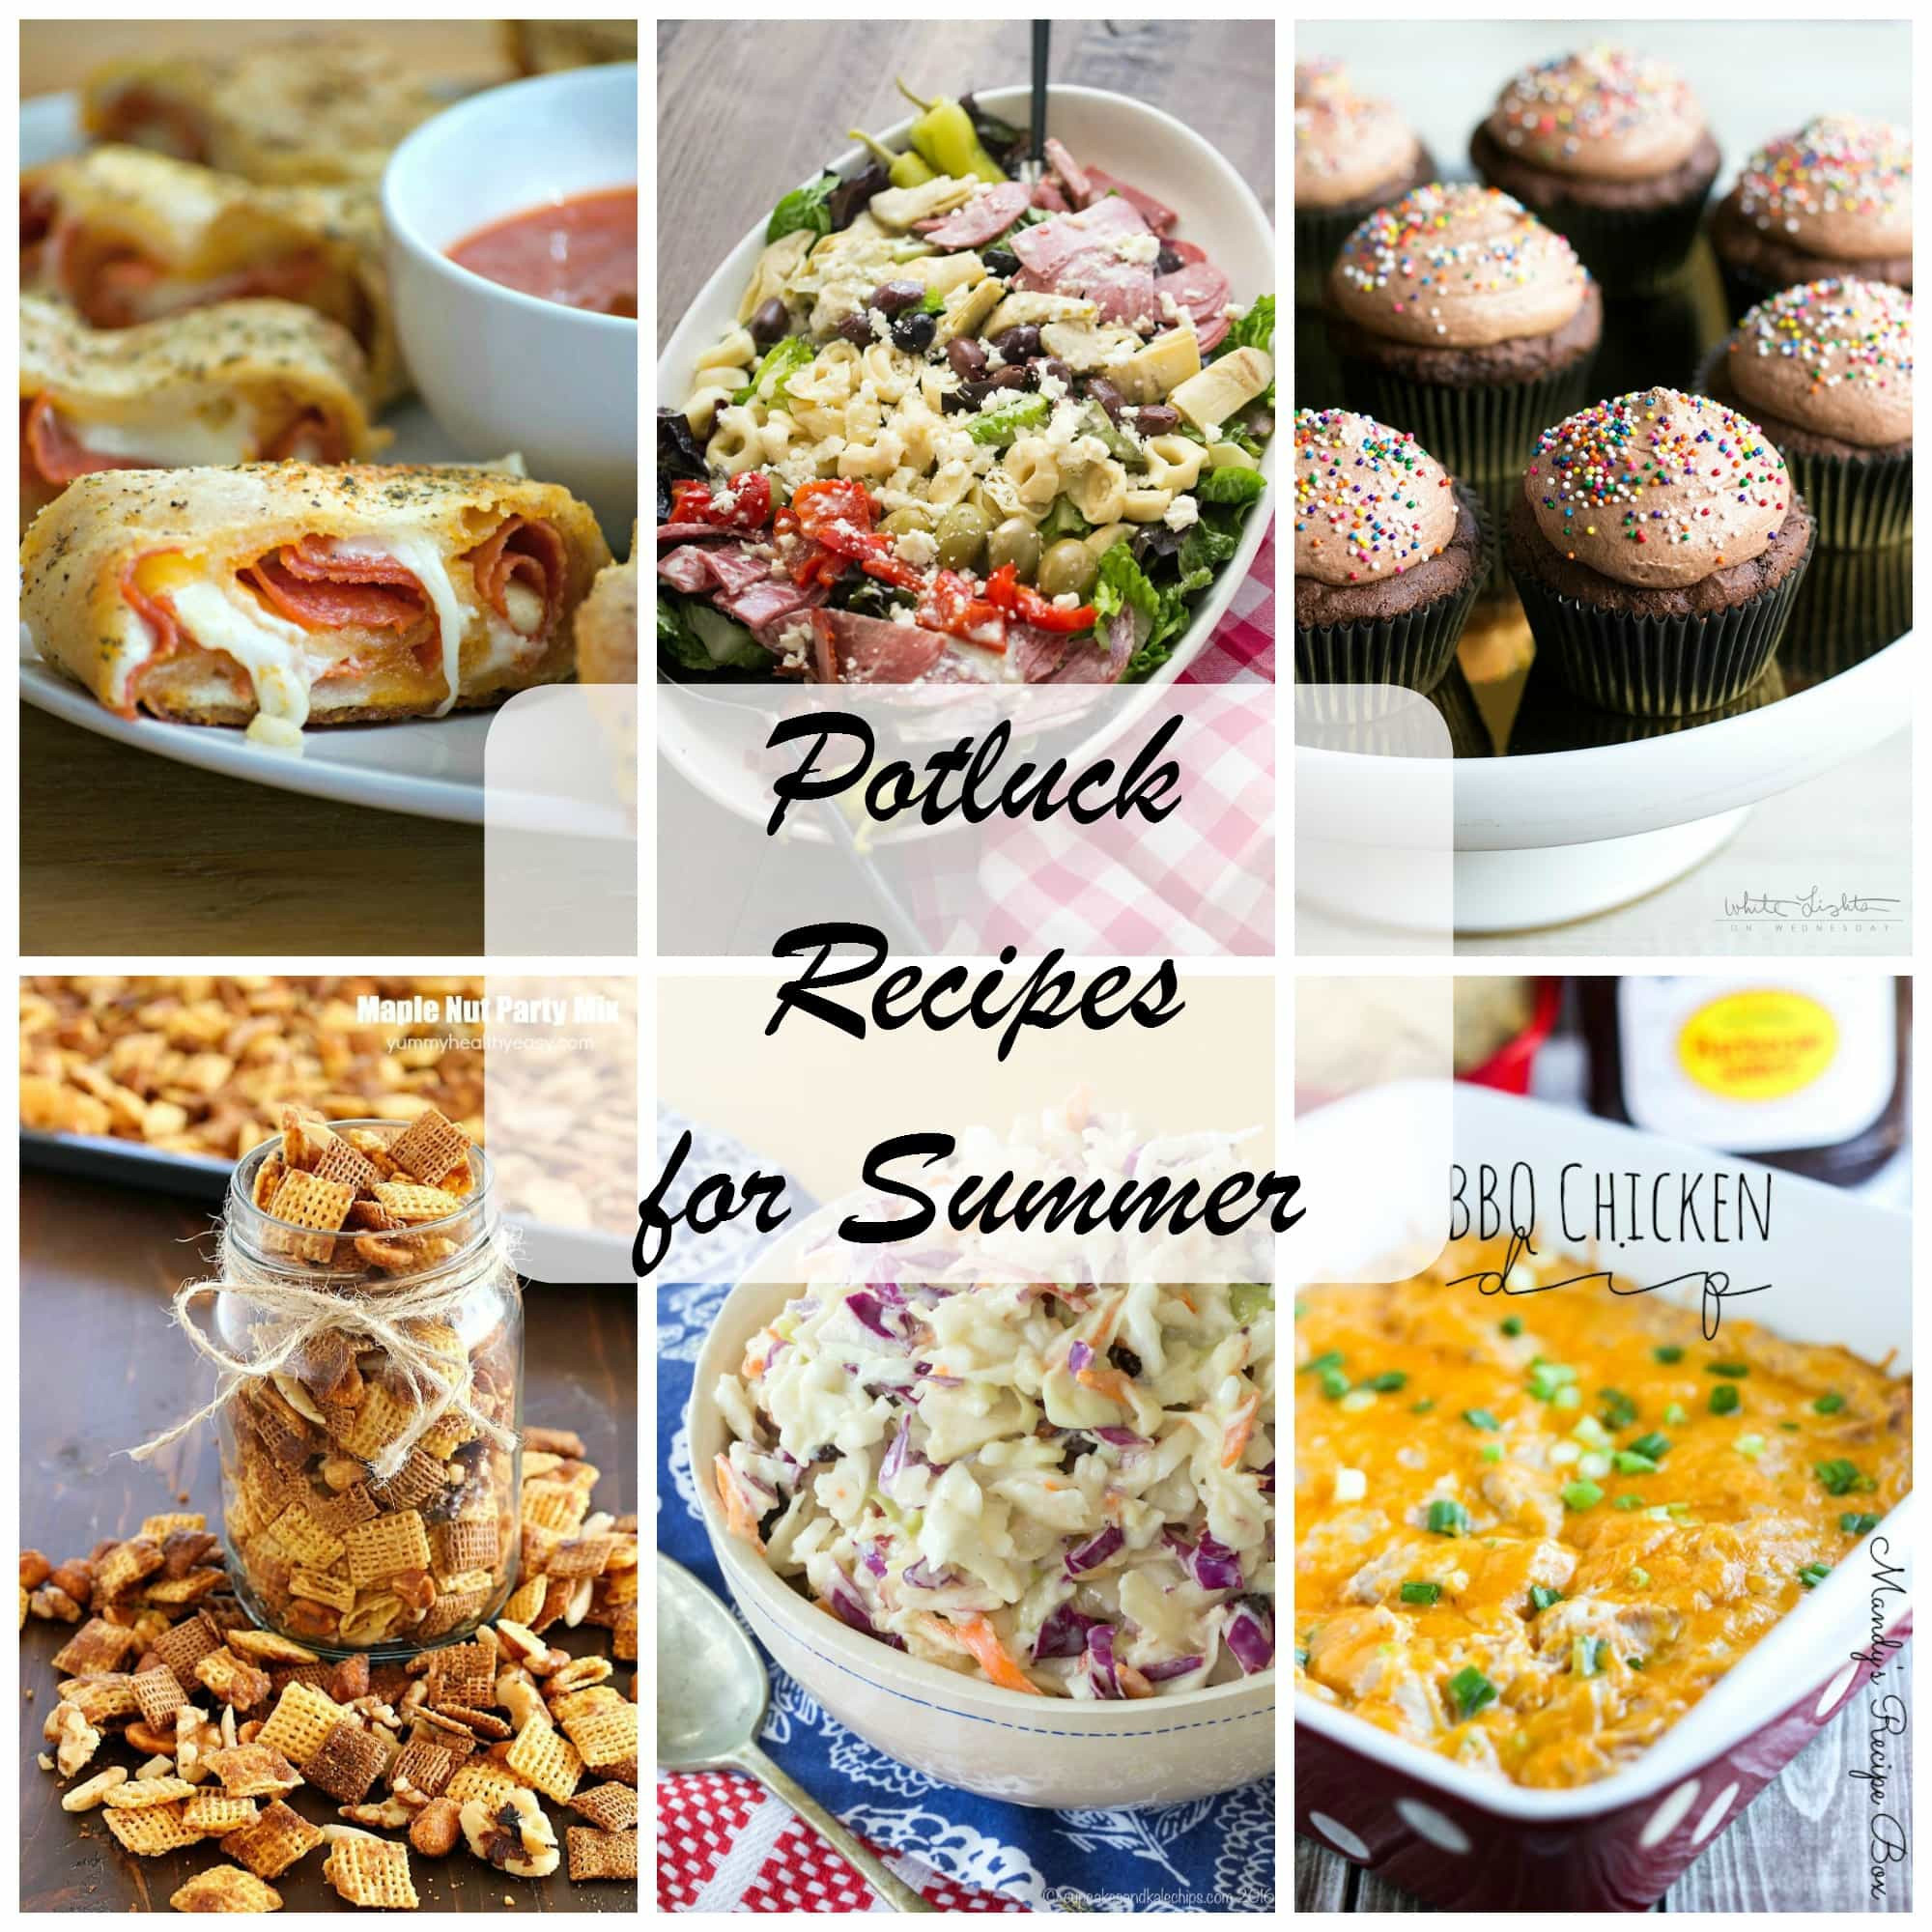 Summer Potluck Desserts  Summer Potluck Recipes 365 Days of Baking and More